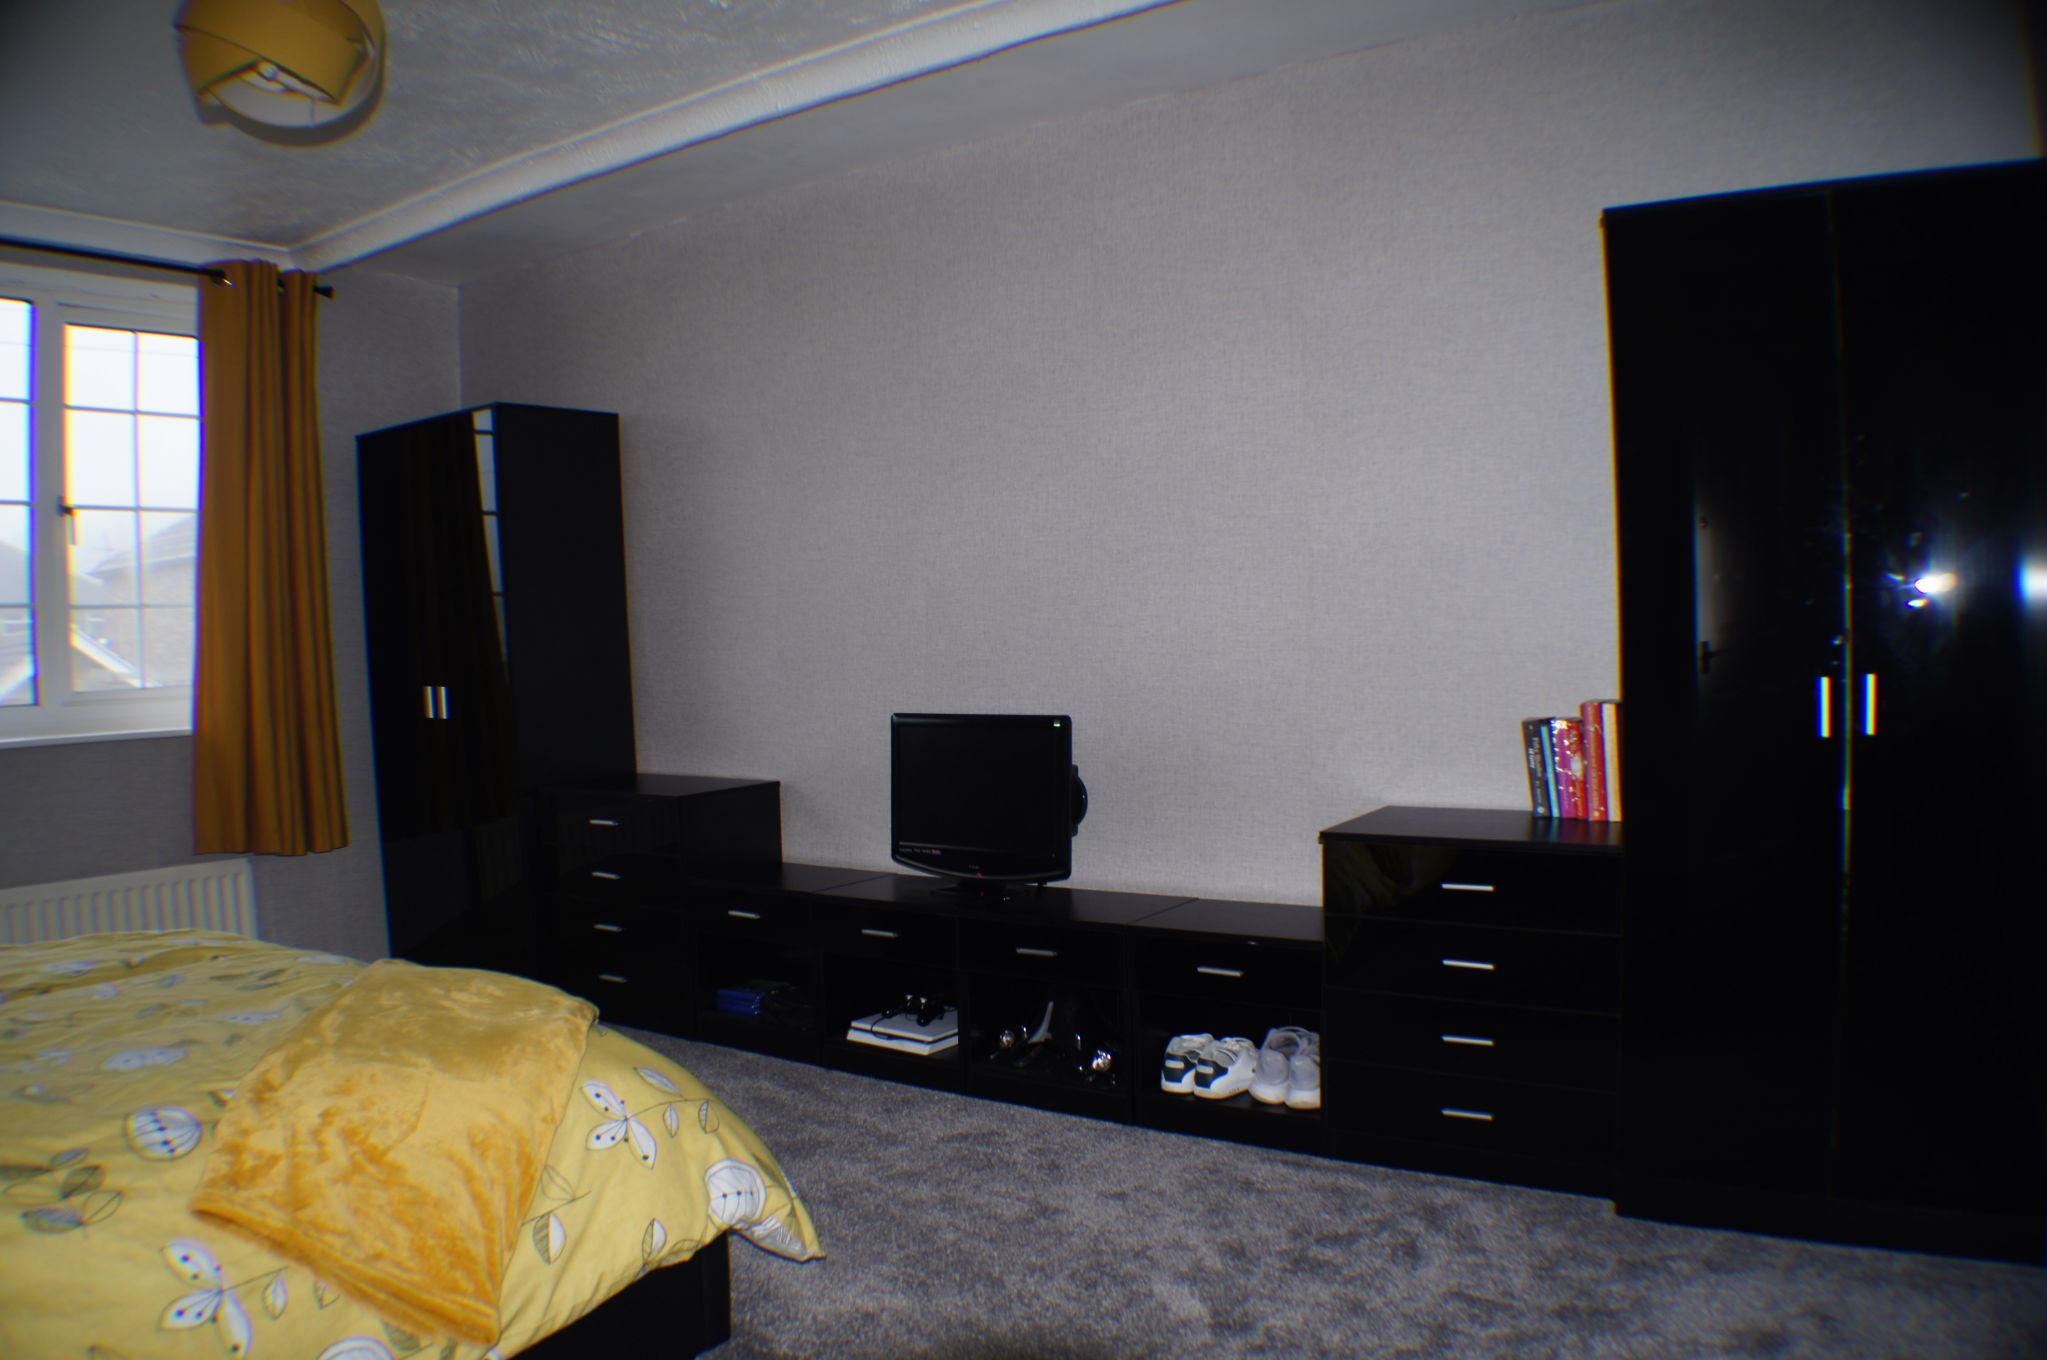 3 bedroom detached house in Bradford - Photograph 8.